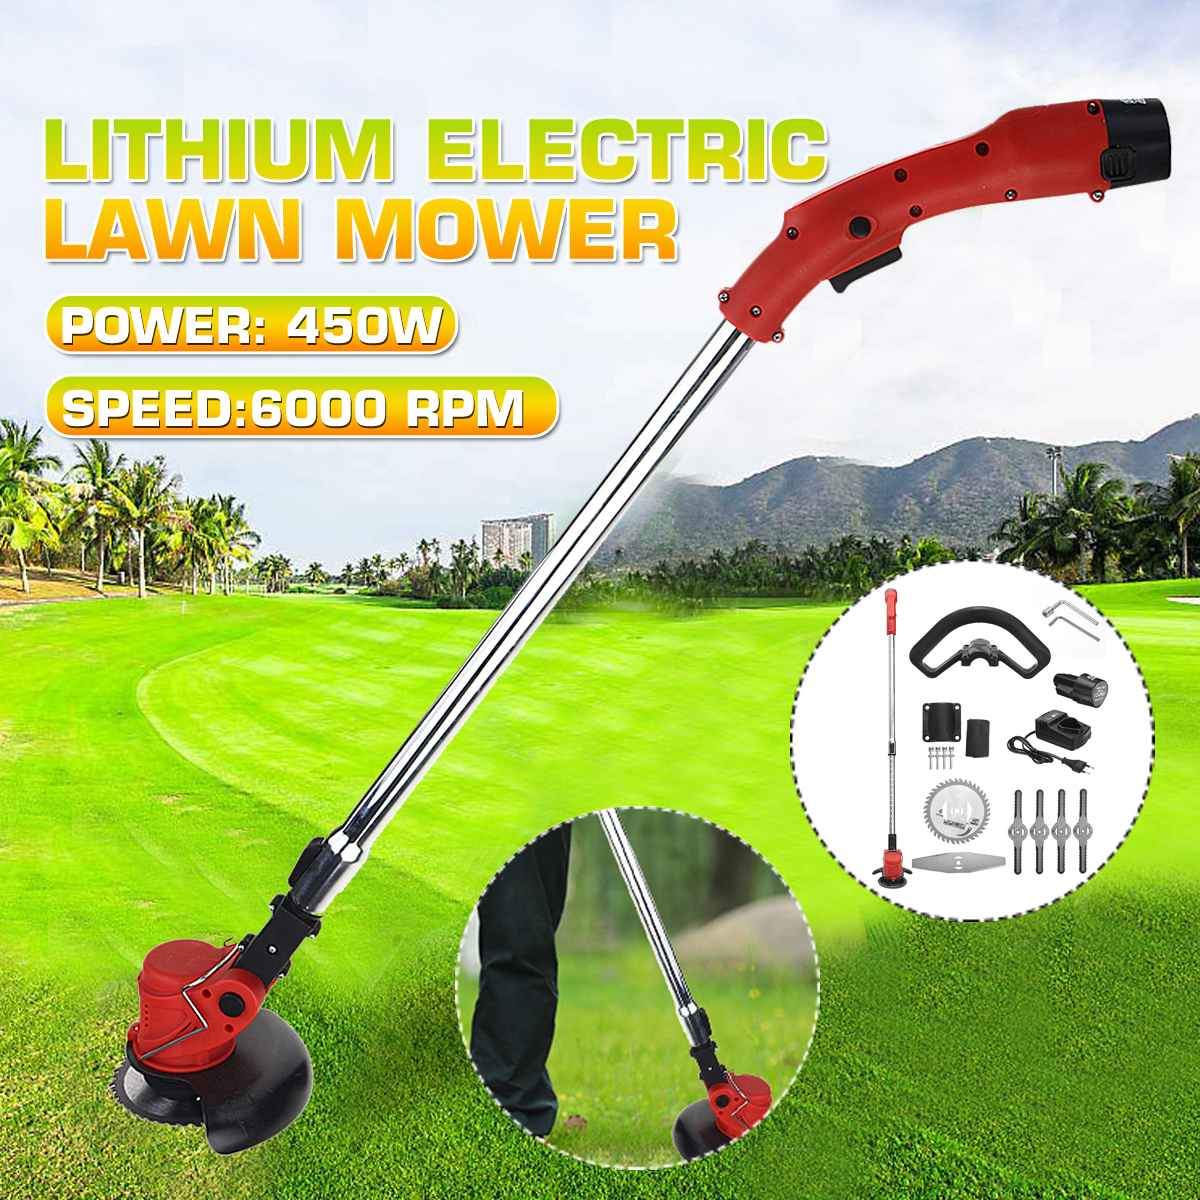 350W 10000 RPM Multi-functional Electric Lawn Mower Brush Cutter Cordless Control Grass Trimmer Adjustable Angle Garden Tool